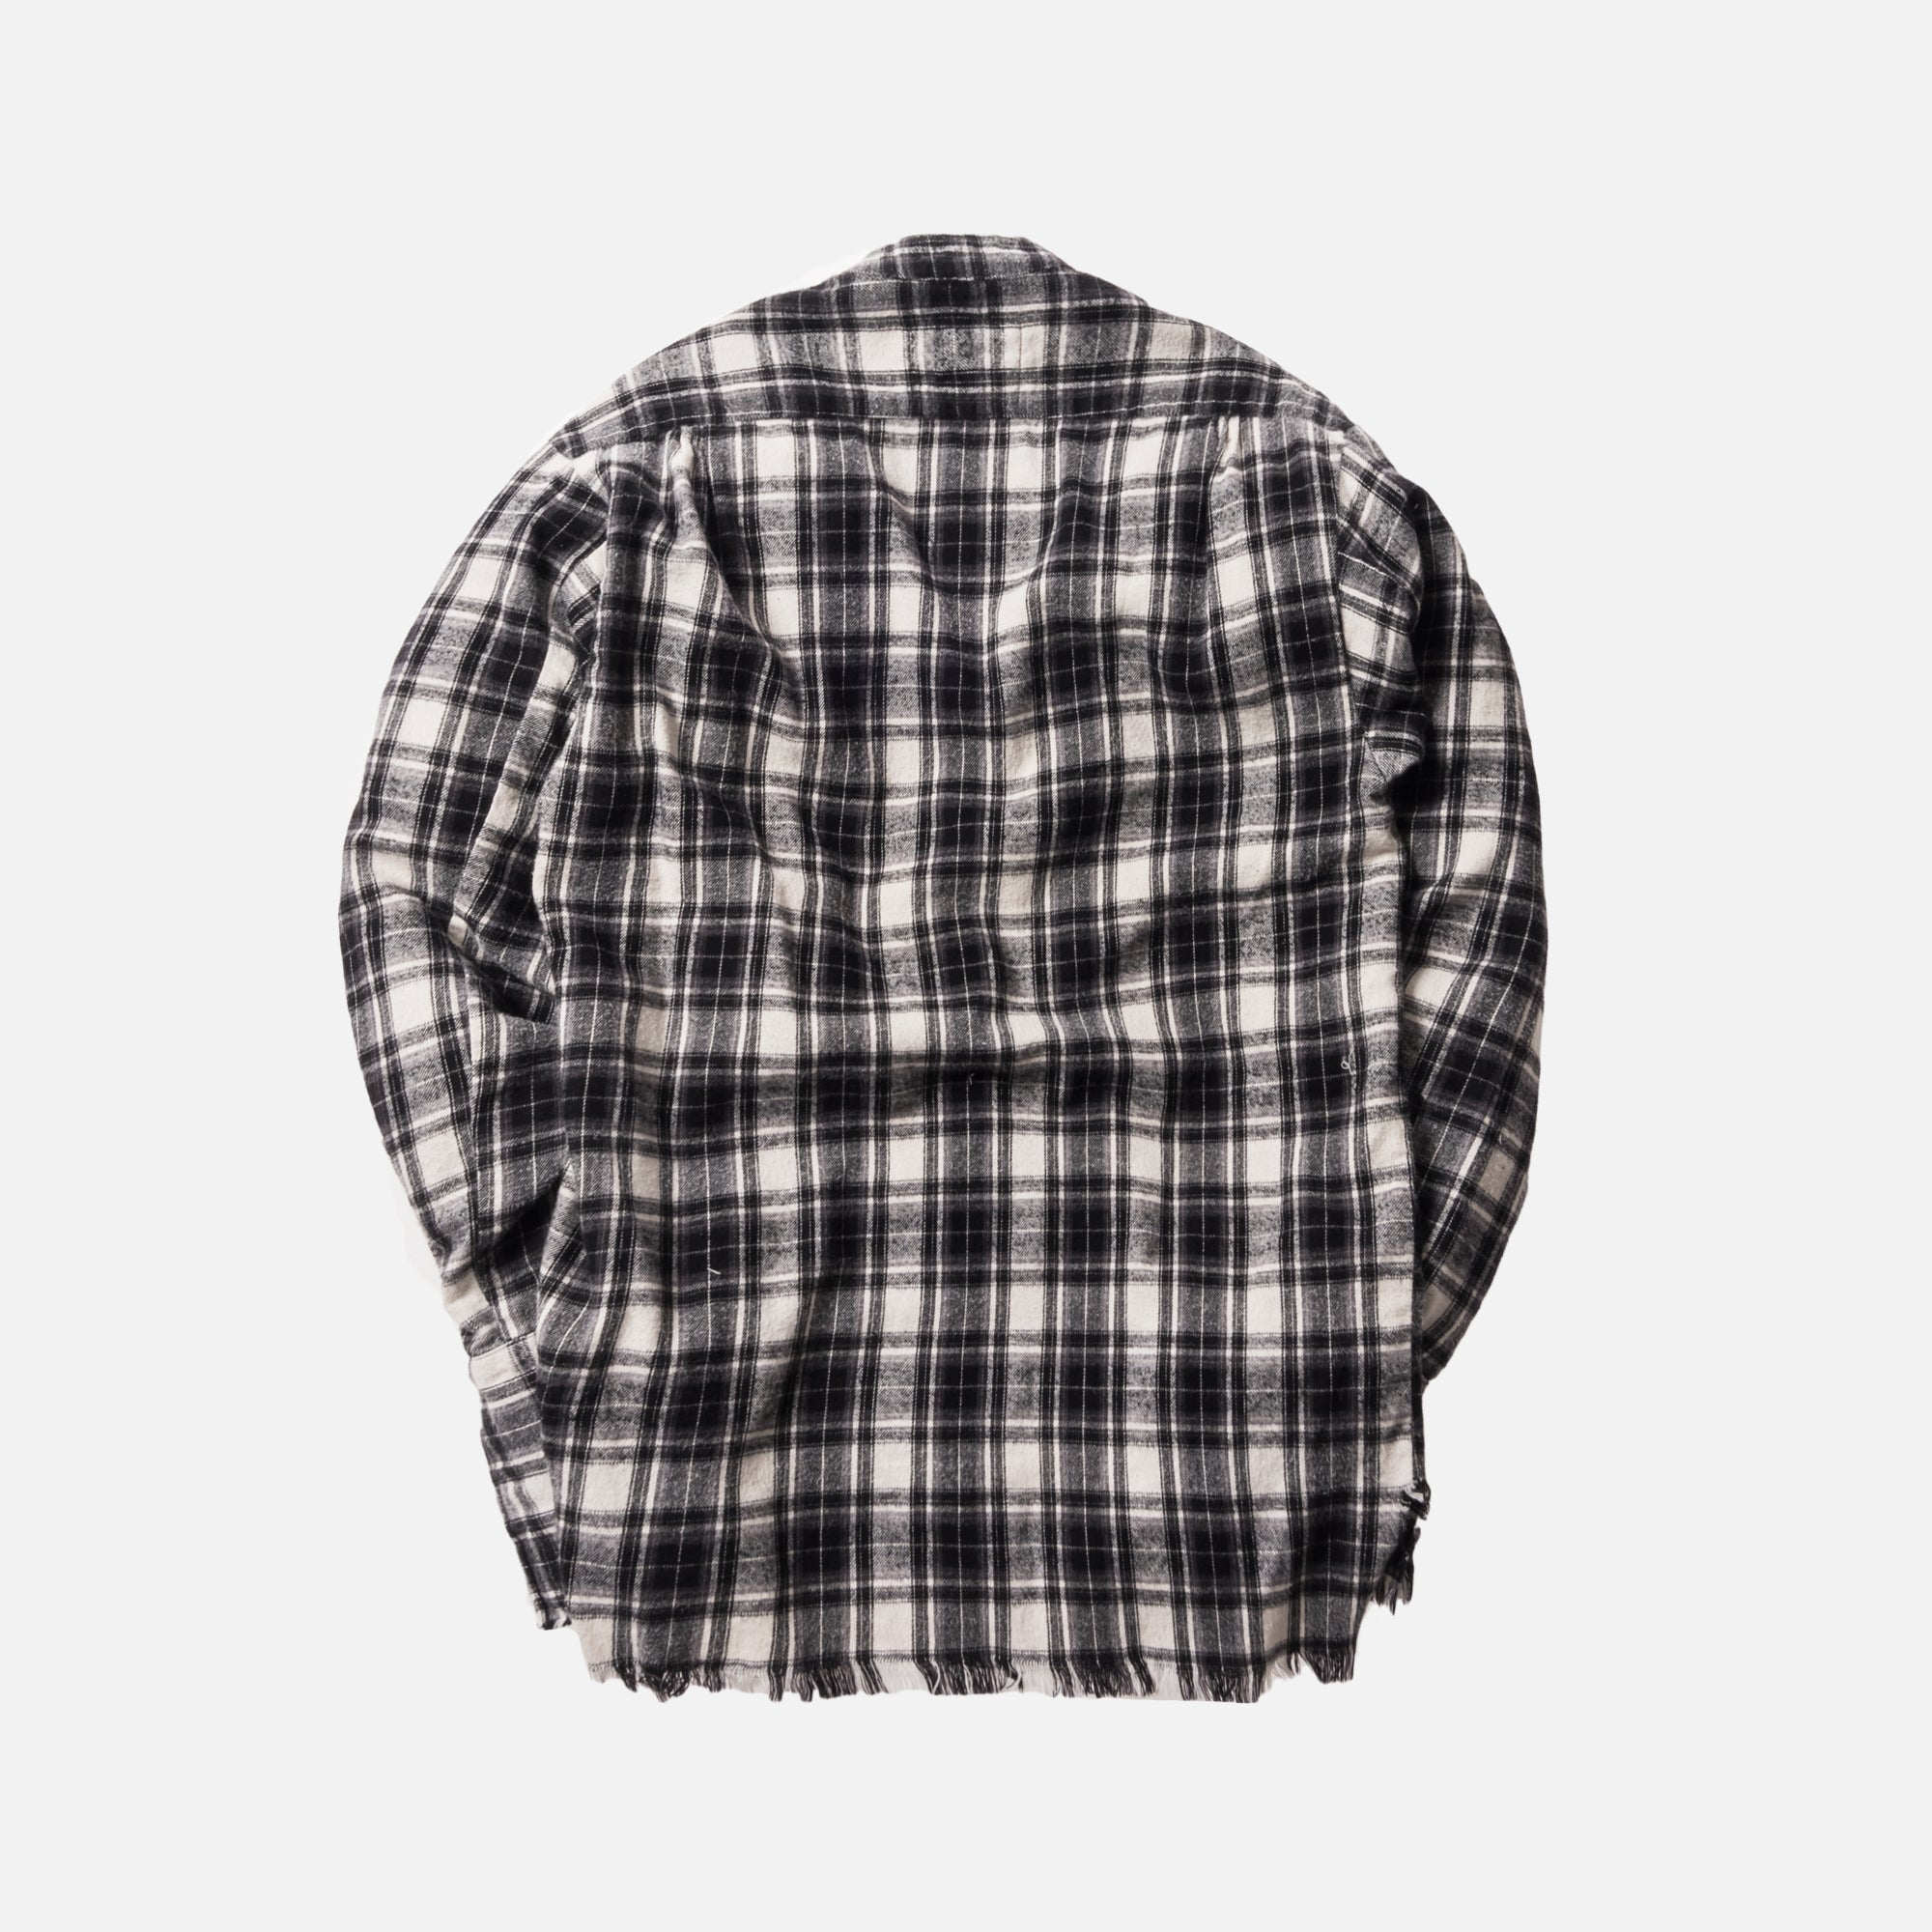 Greg Lauren Falcon Flannel Studio Shirt - Black / White